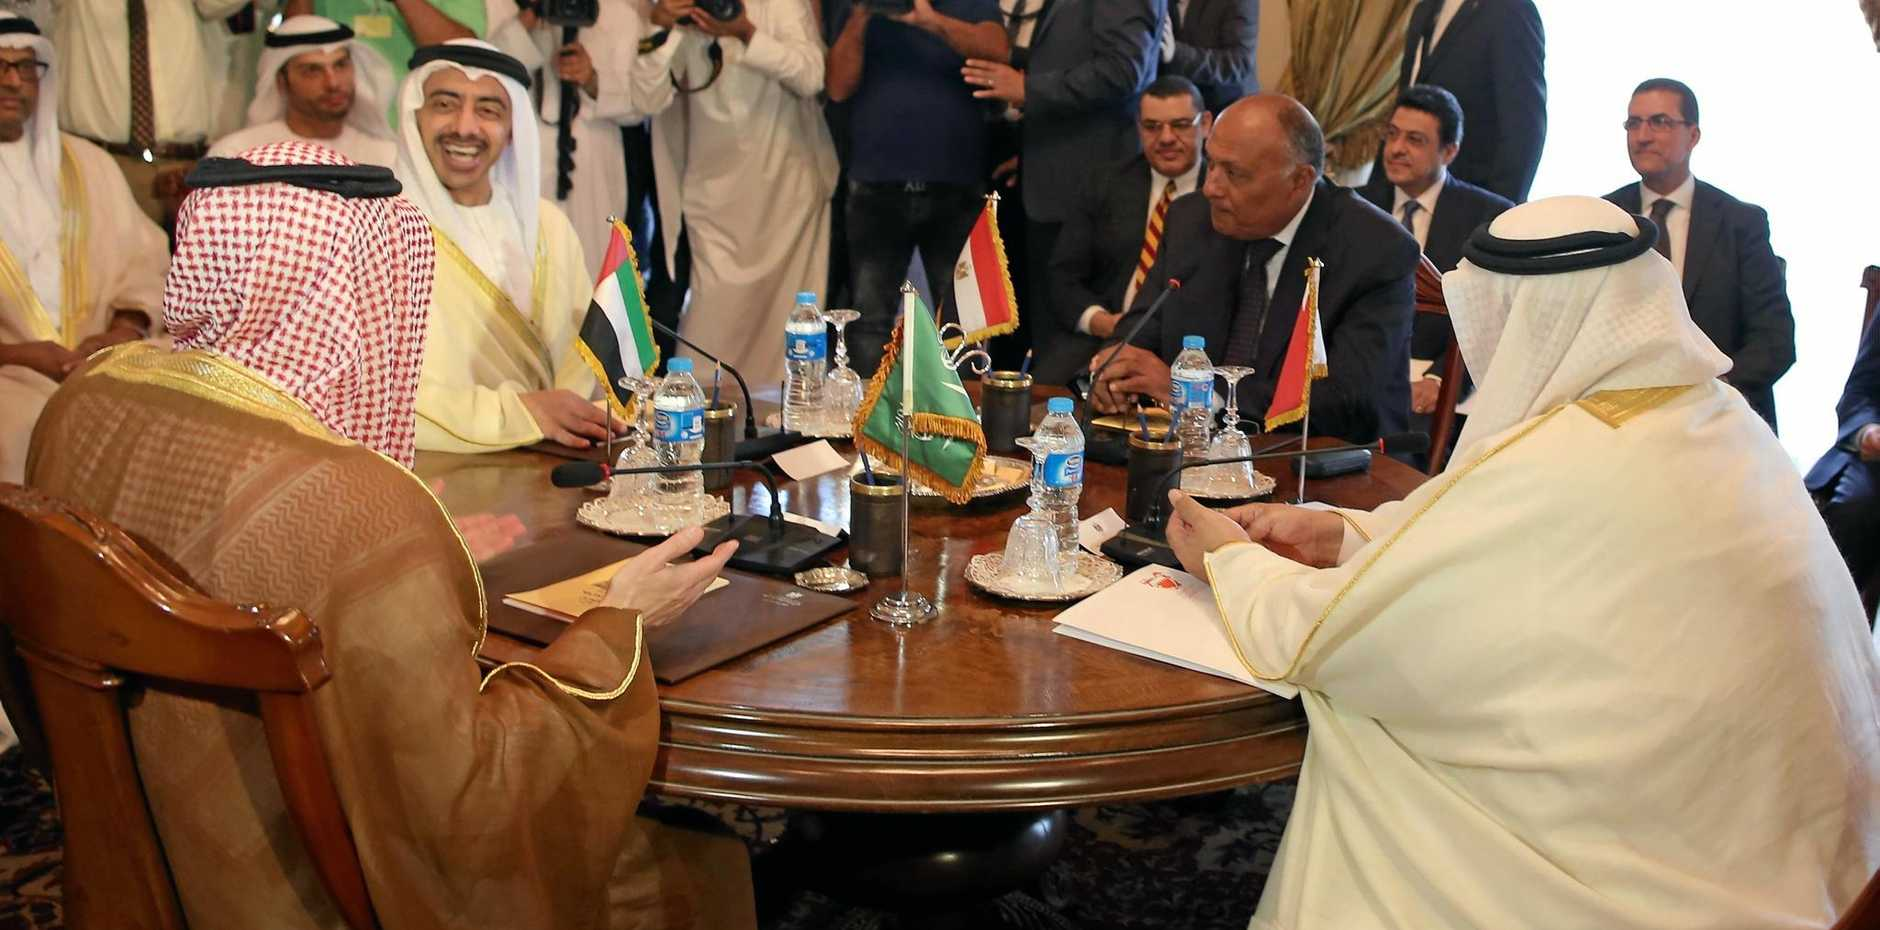 Foreign Ministers from Saudi Arabia, the UAE, Egypt and Bahrain meet in Cairo, Egypt, to discuss the diplomatic situation with Qatar.